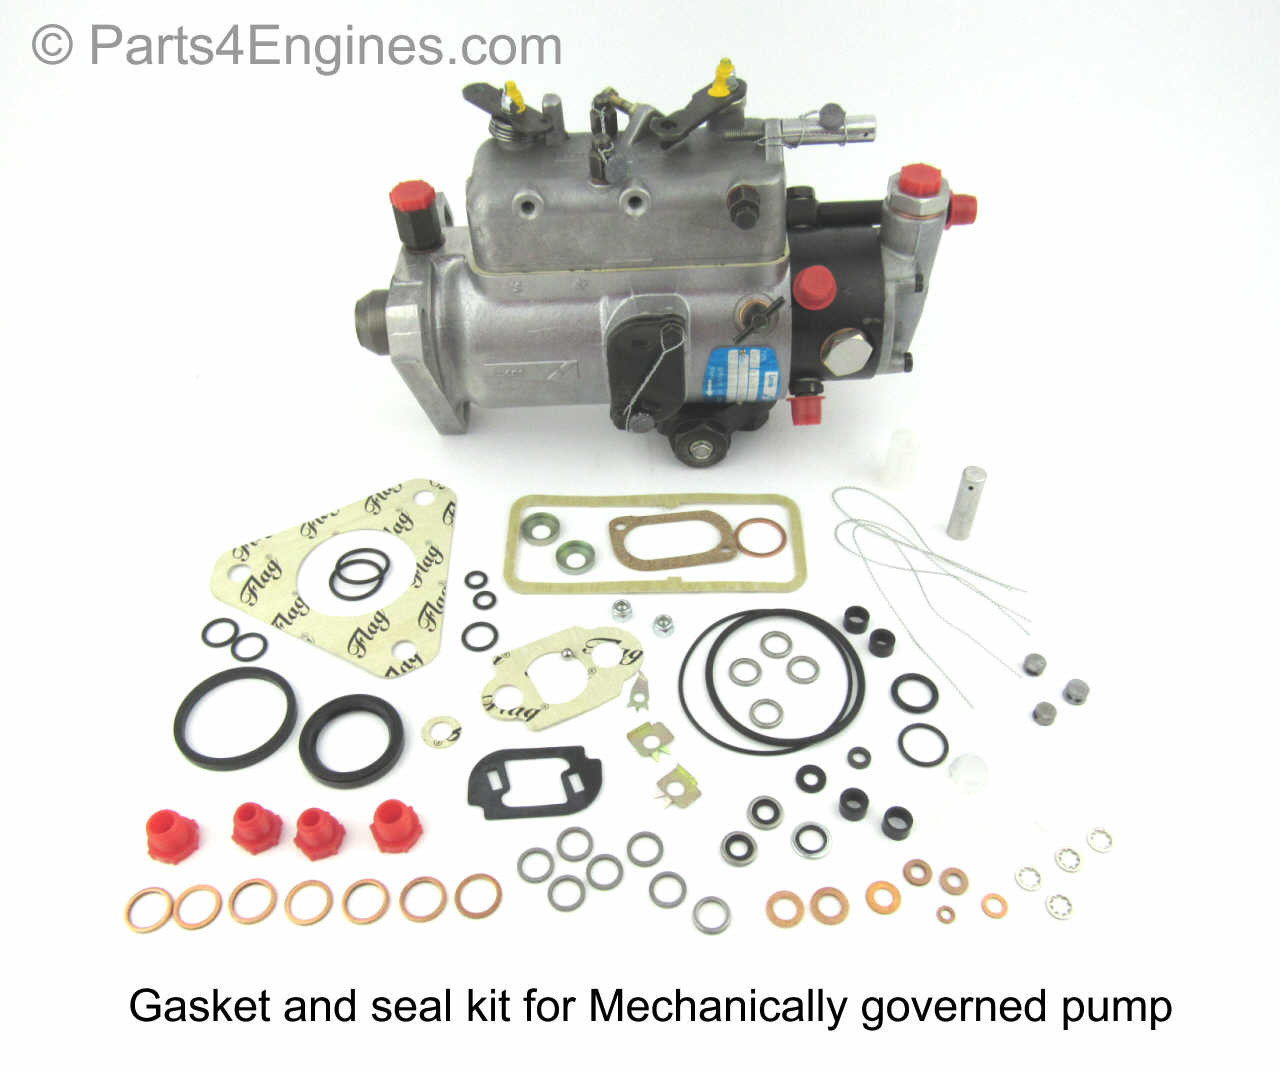 hight resolution of perkins 6 354 gasket seal kit for mechanical governed injection pump